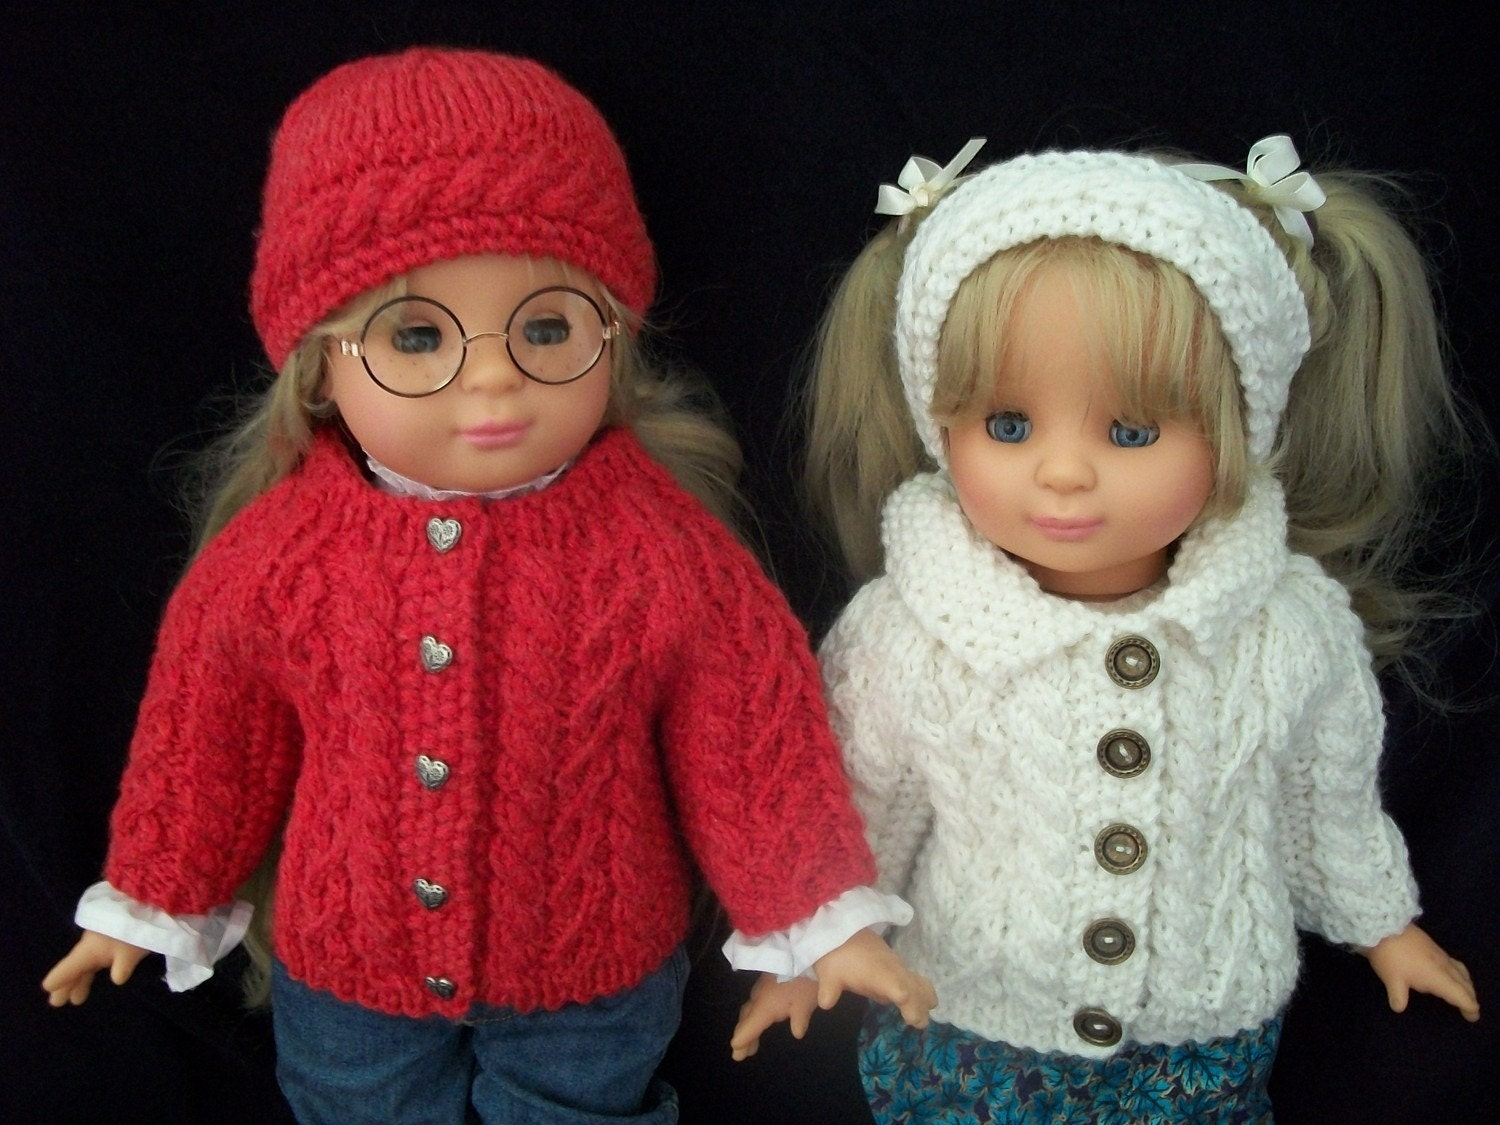 Knitting Pattern 18 Inch Doll : 18 inch Doll Knitting Pattern All Over Cable by lagaladesigns